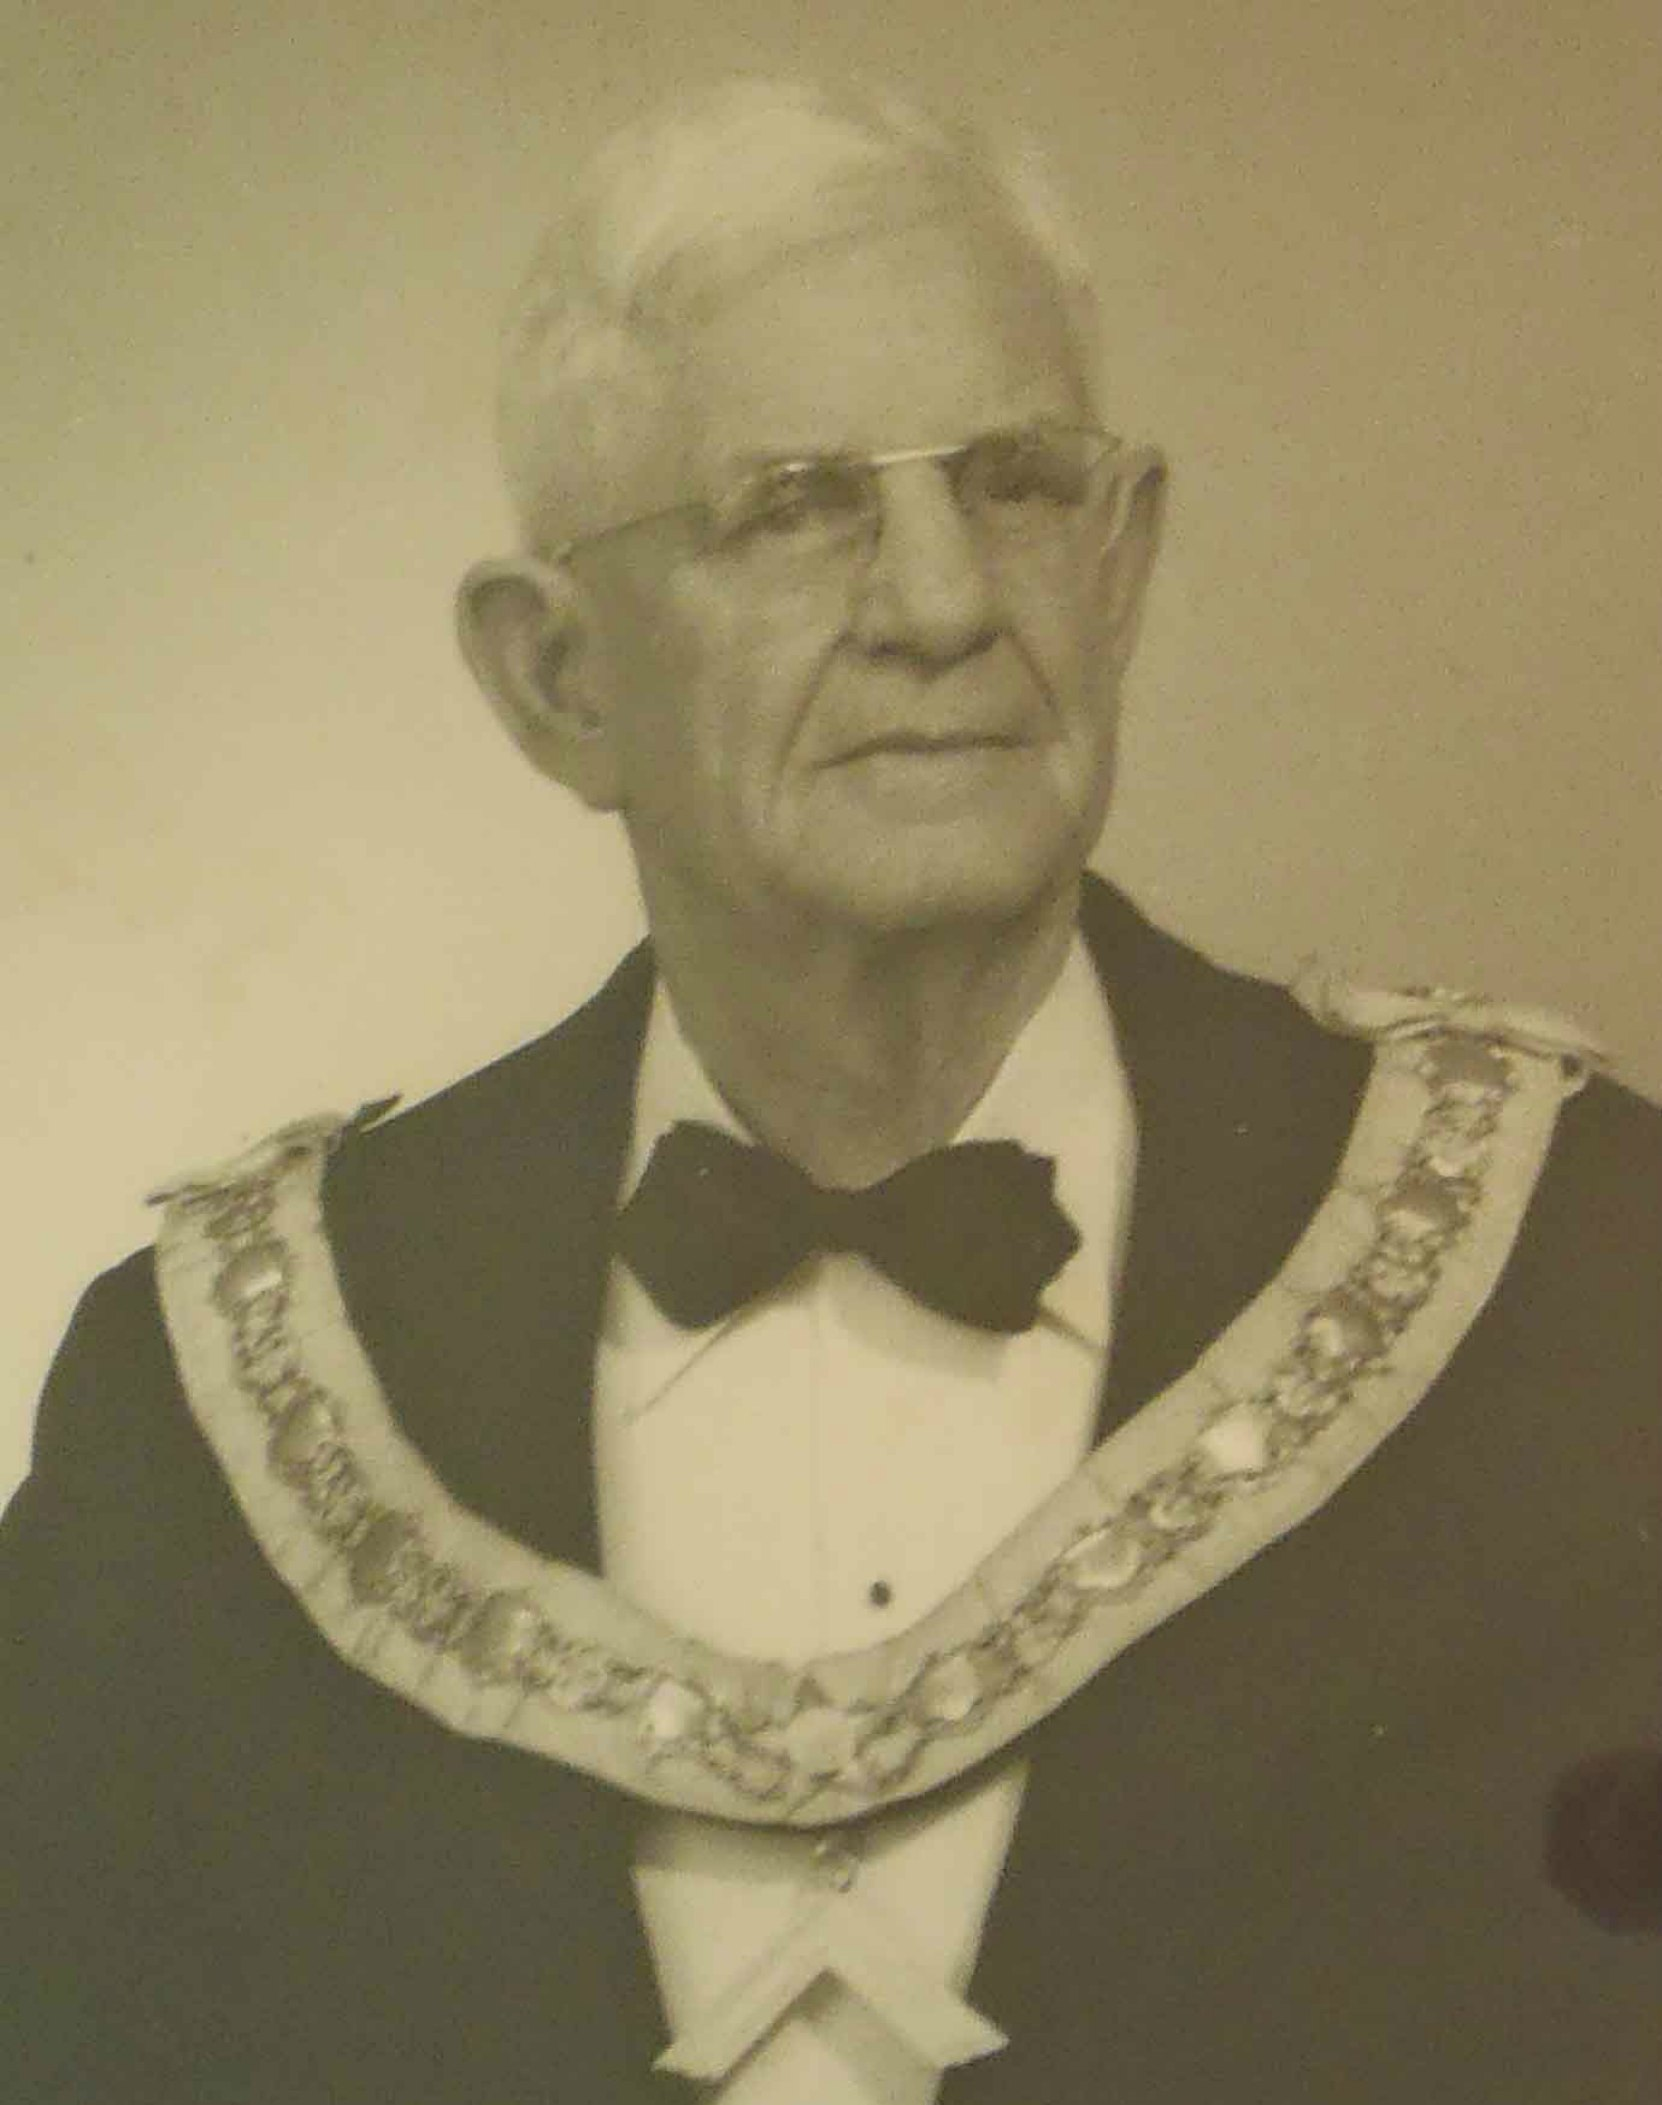 Charles William O'Neill was Worshipful Master of Temple Lodge, No.33 in 1919.